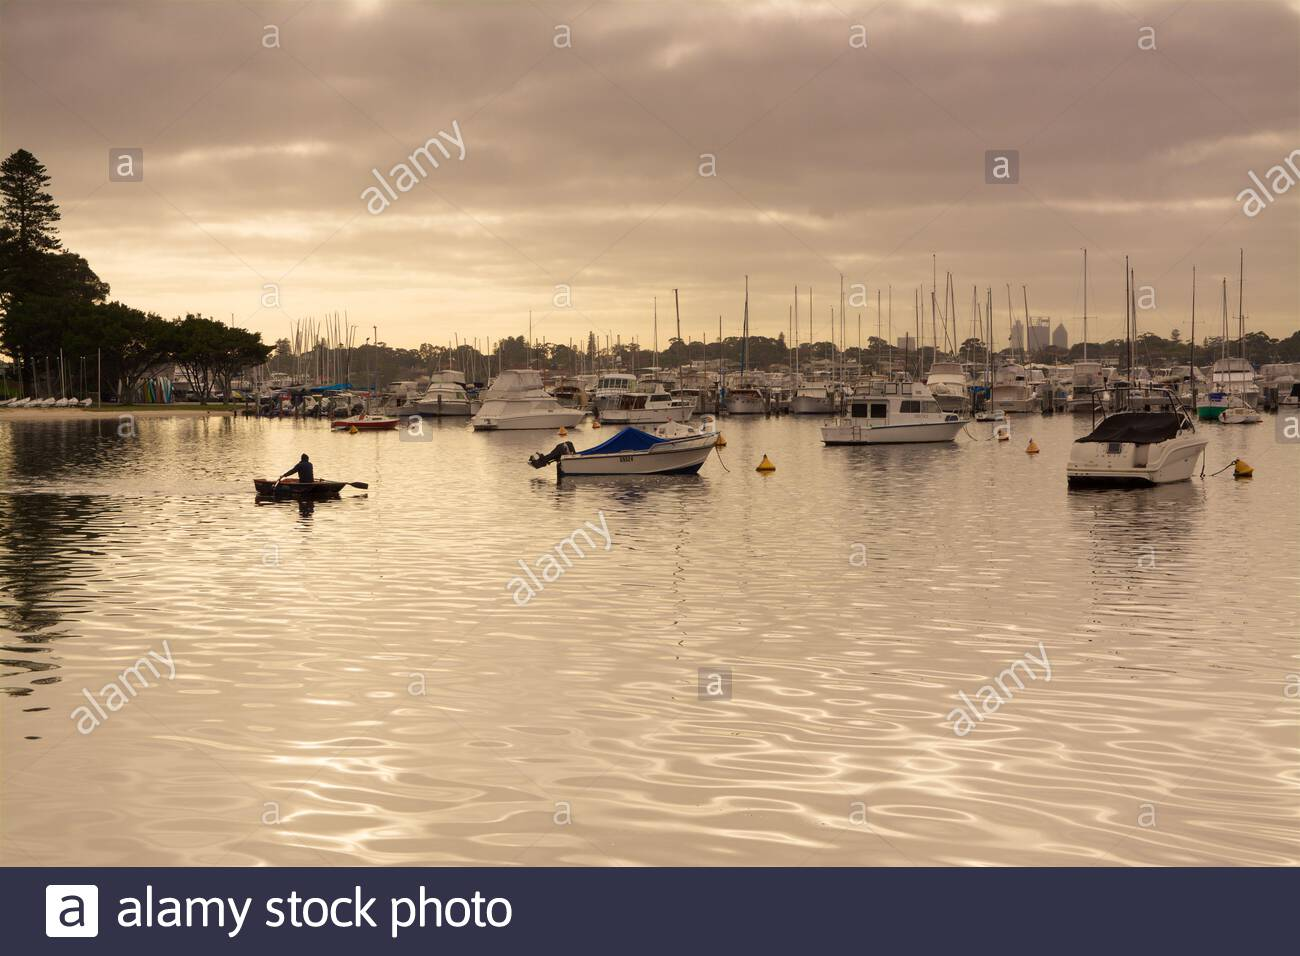 a-man-rowing-a-boat-in-atmospheric-golden-light-near-the-freshwater-bay-yacht-club-on-the-swan-river-in-perth-western-australia-2C4J1TK.jpg